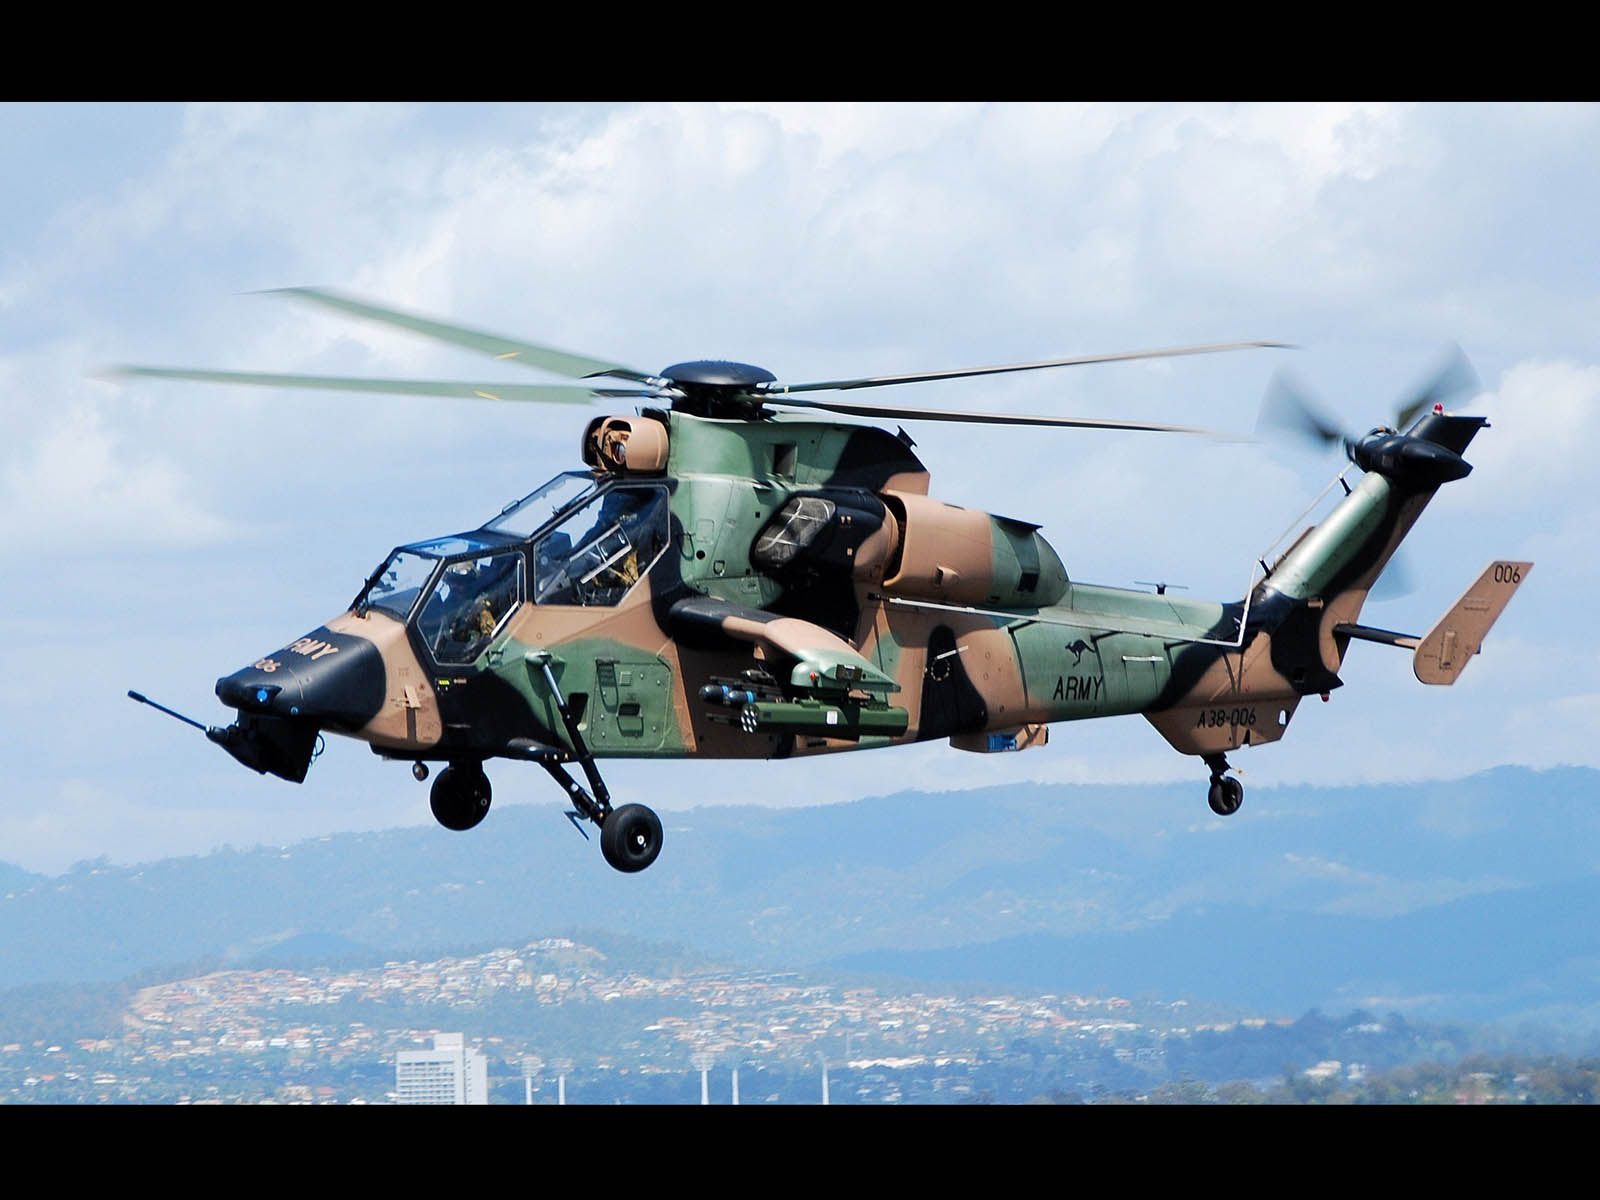 Army Helicopters Wallpapers Military helicopter wallpapers 1600x1200